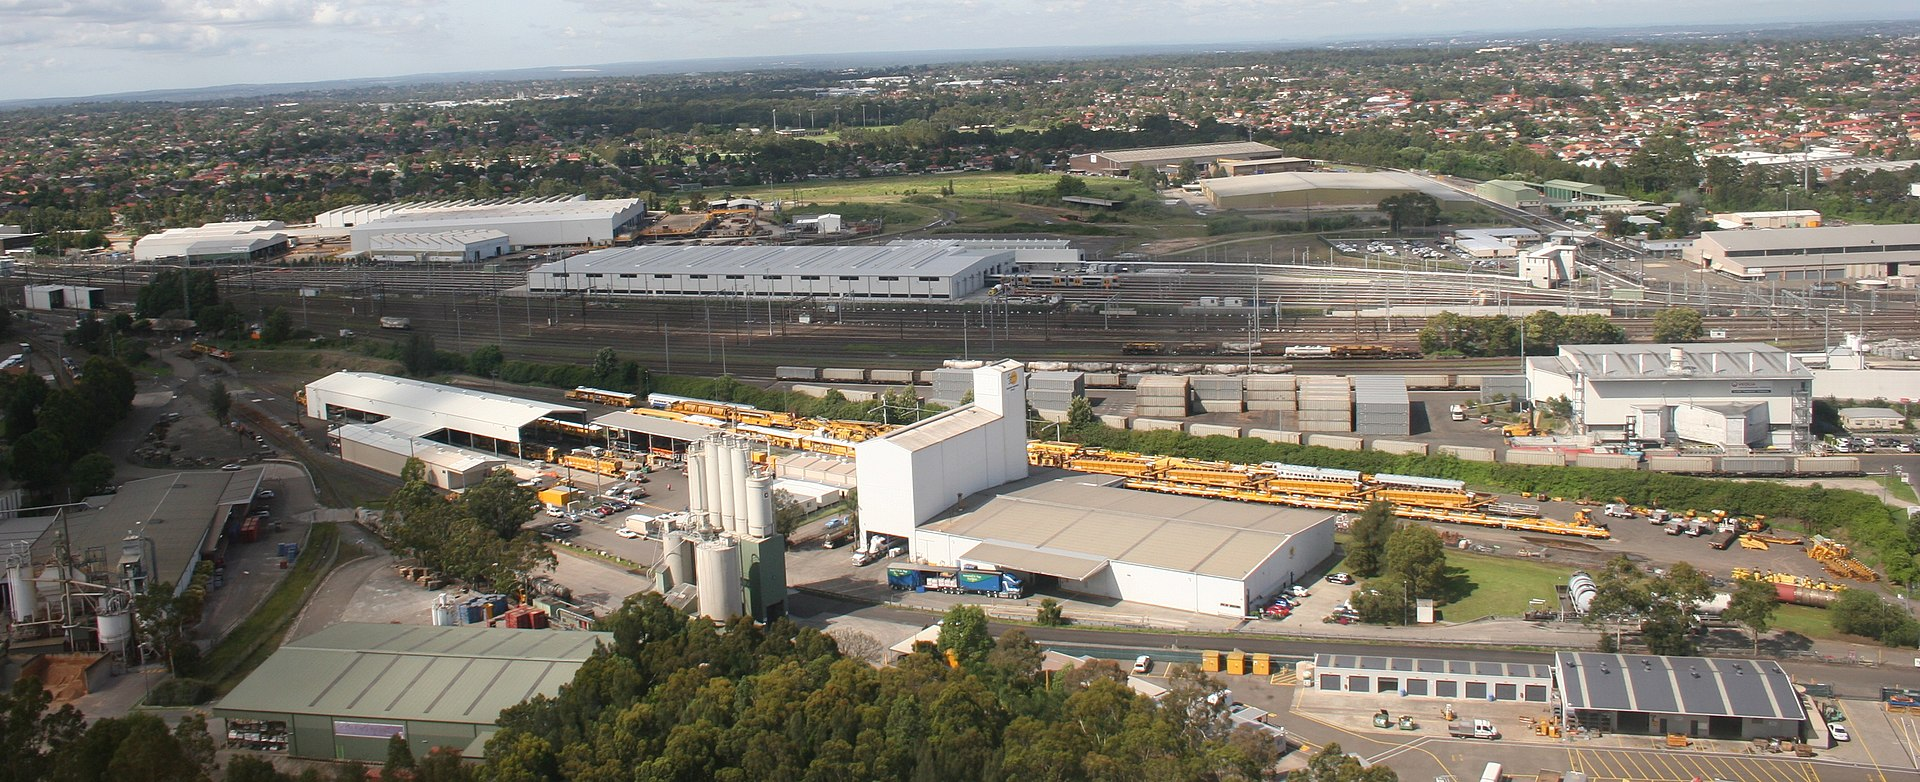 Railway storage and maintenance facilities